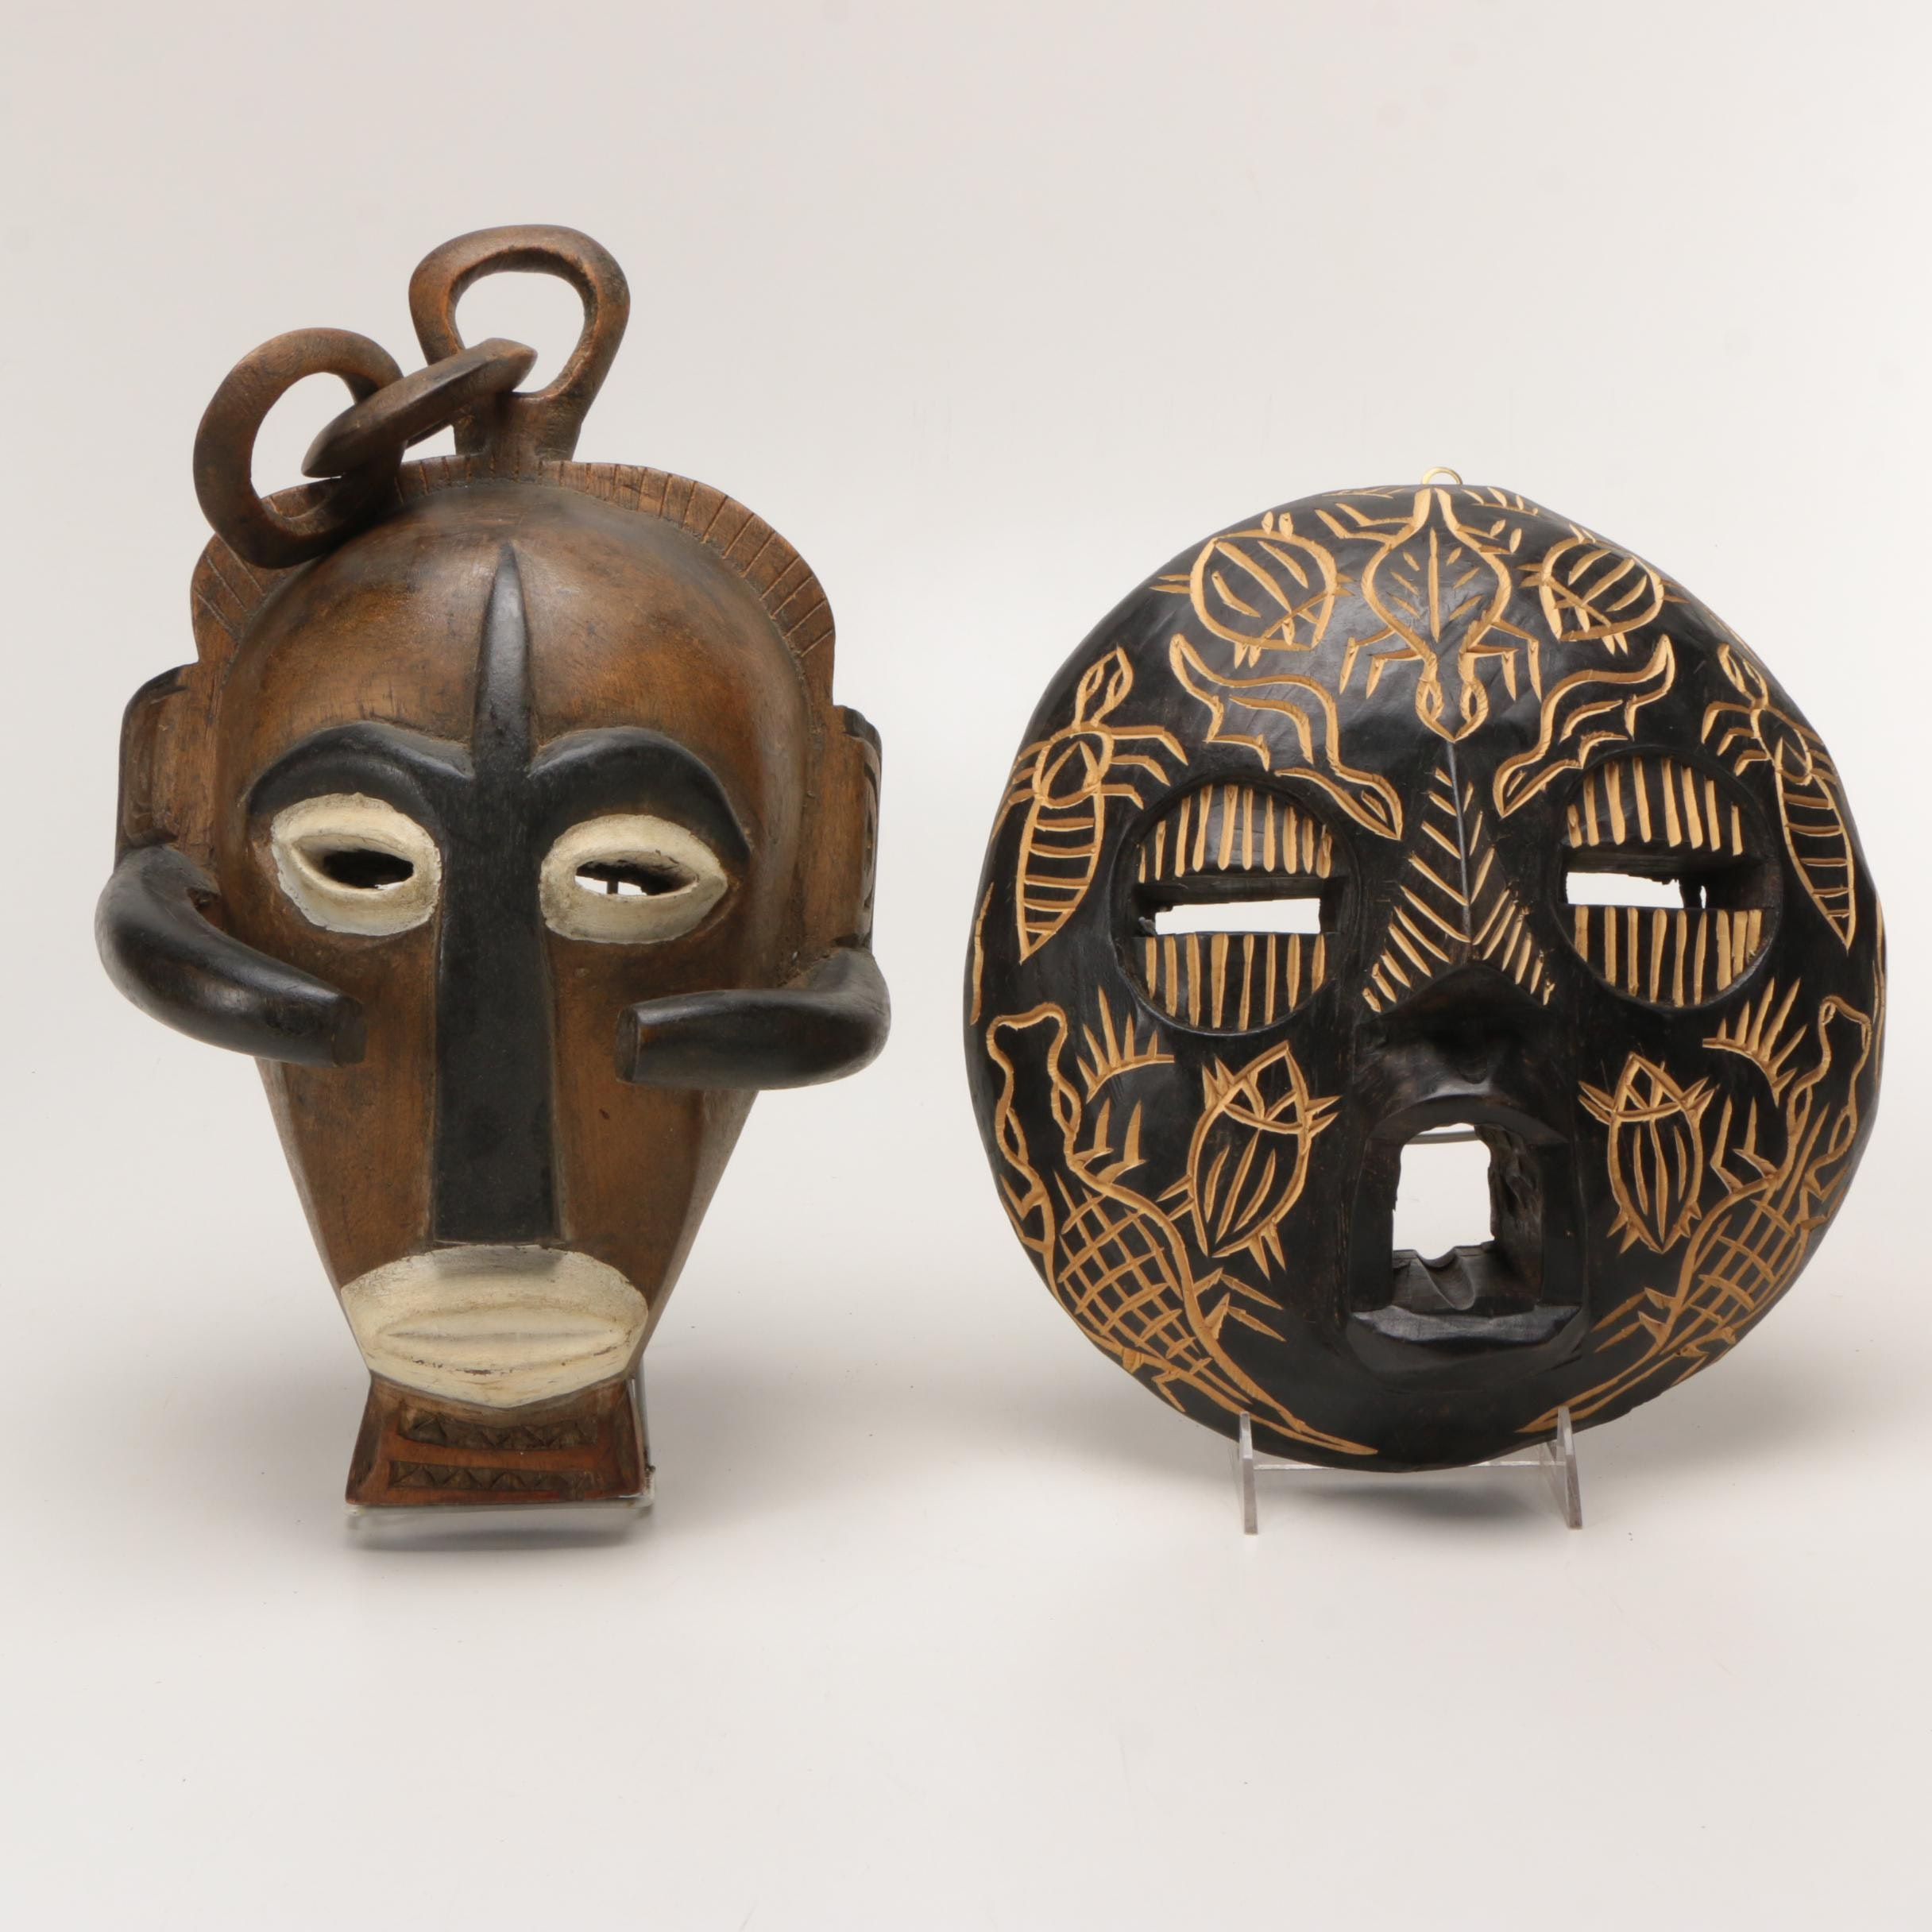 Pende and Baluba Carved Wooden Masks